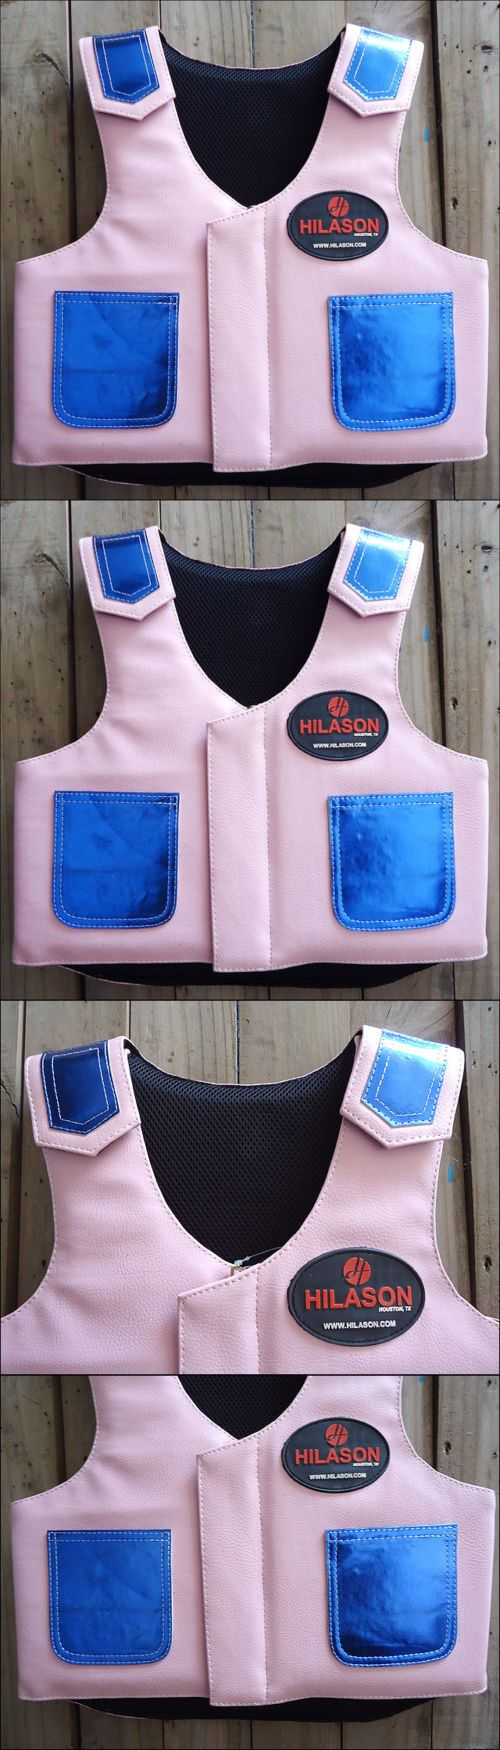 Other Protective Gear 87446: Hilason Kids Junior Youth Bull Riding Pro Rodeo Leather Protective Vest -> BUY IT NOW ONLY: $79.95 on eBay!